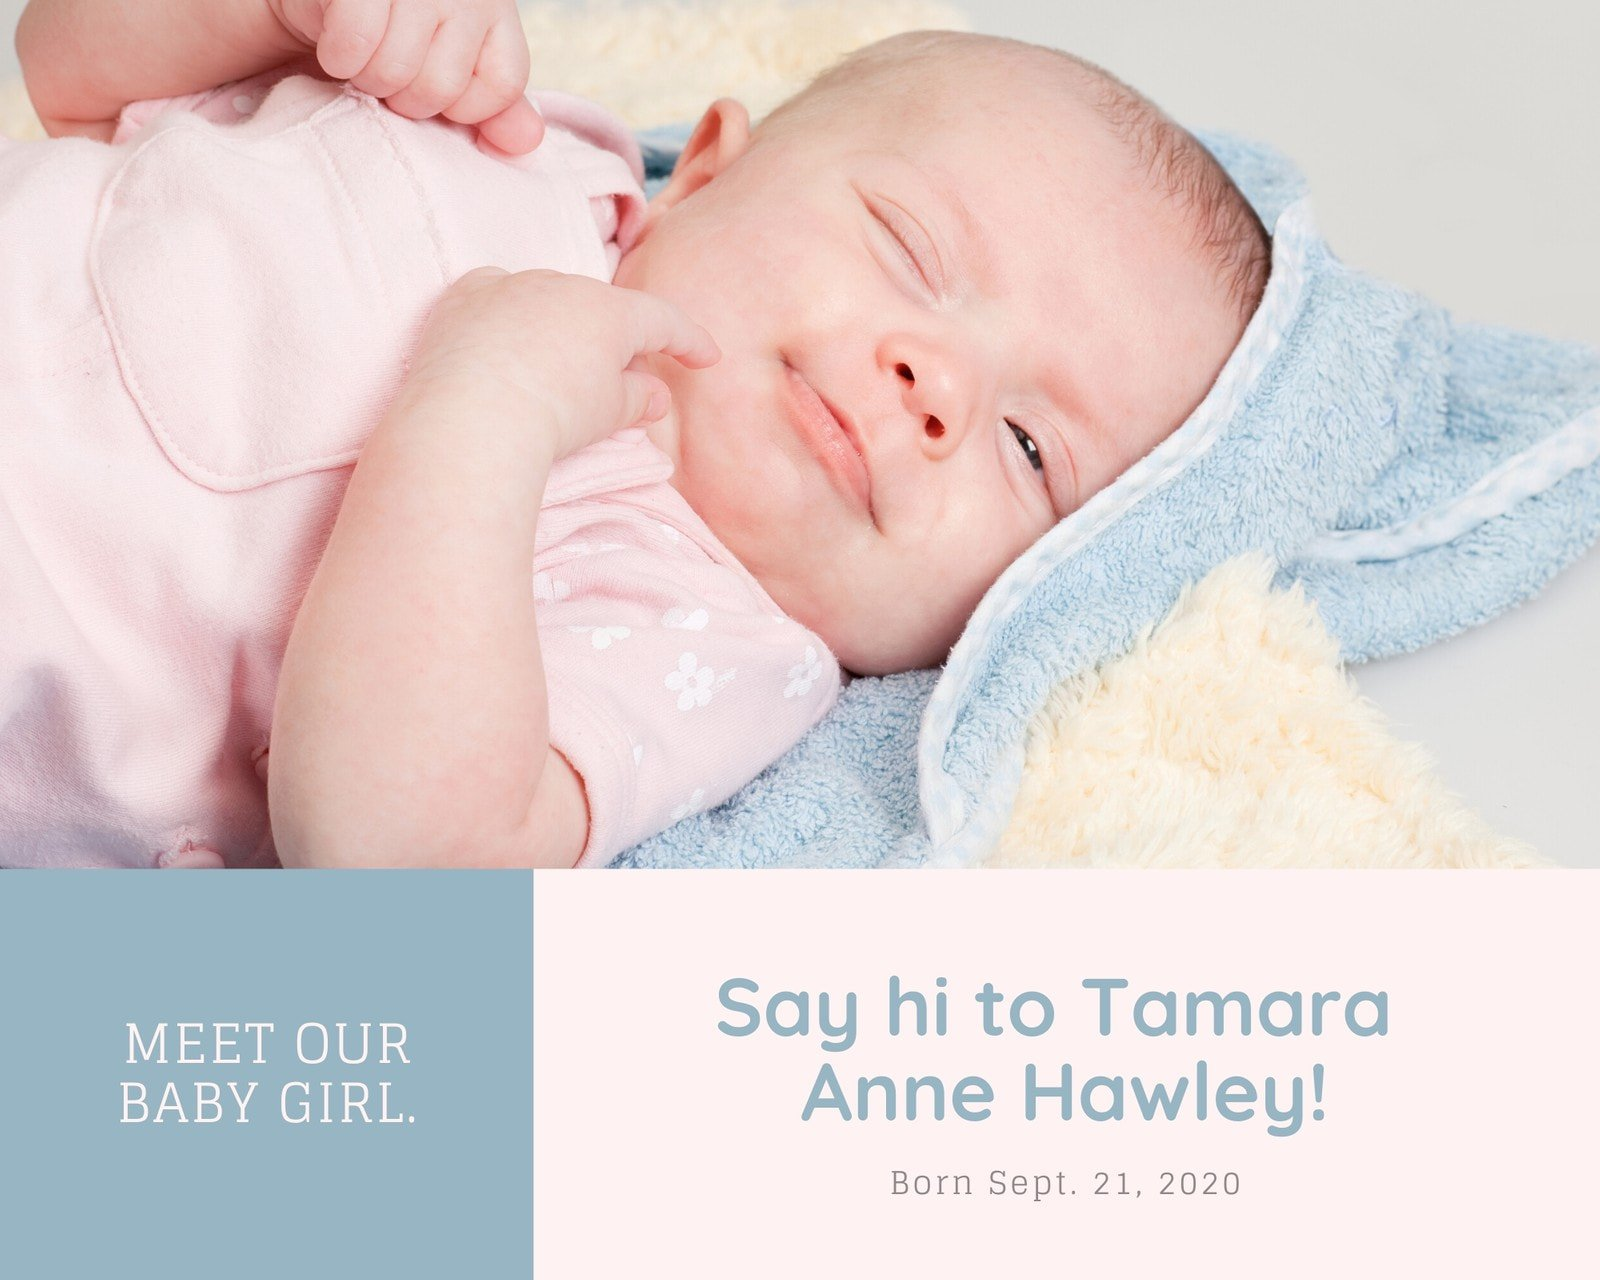 Pink and Blue Newborn Baby Birth Announcement Photo Collage